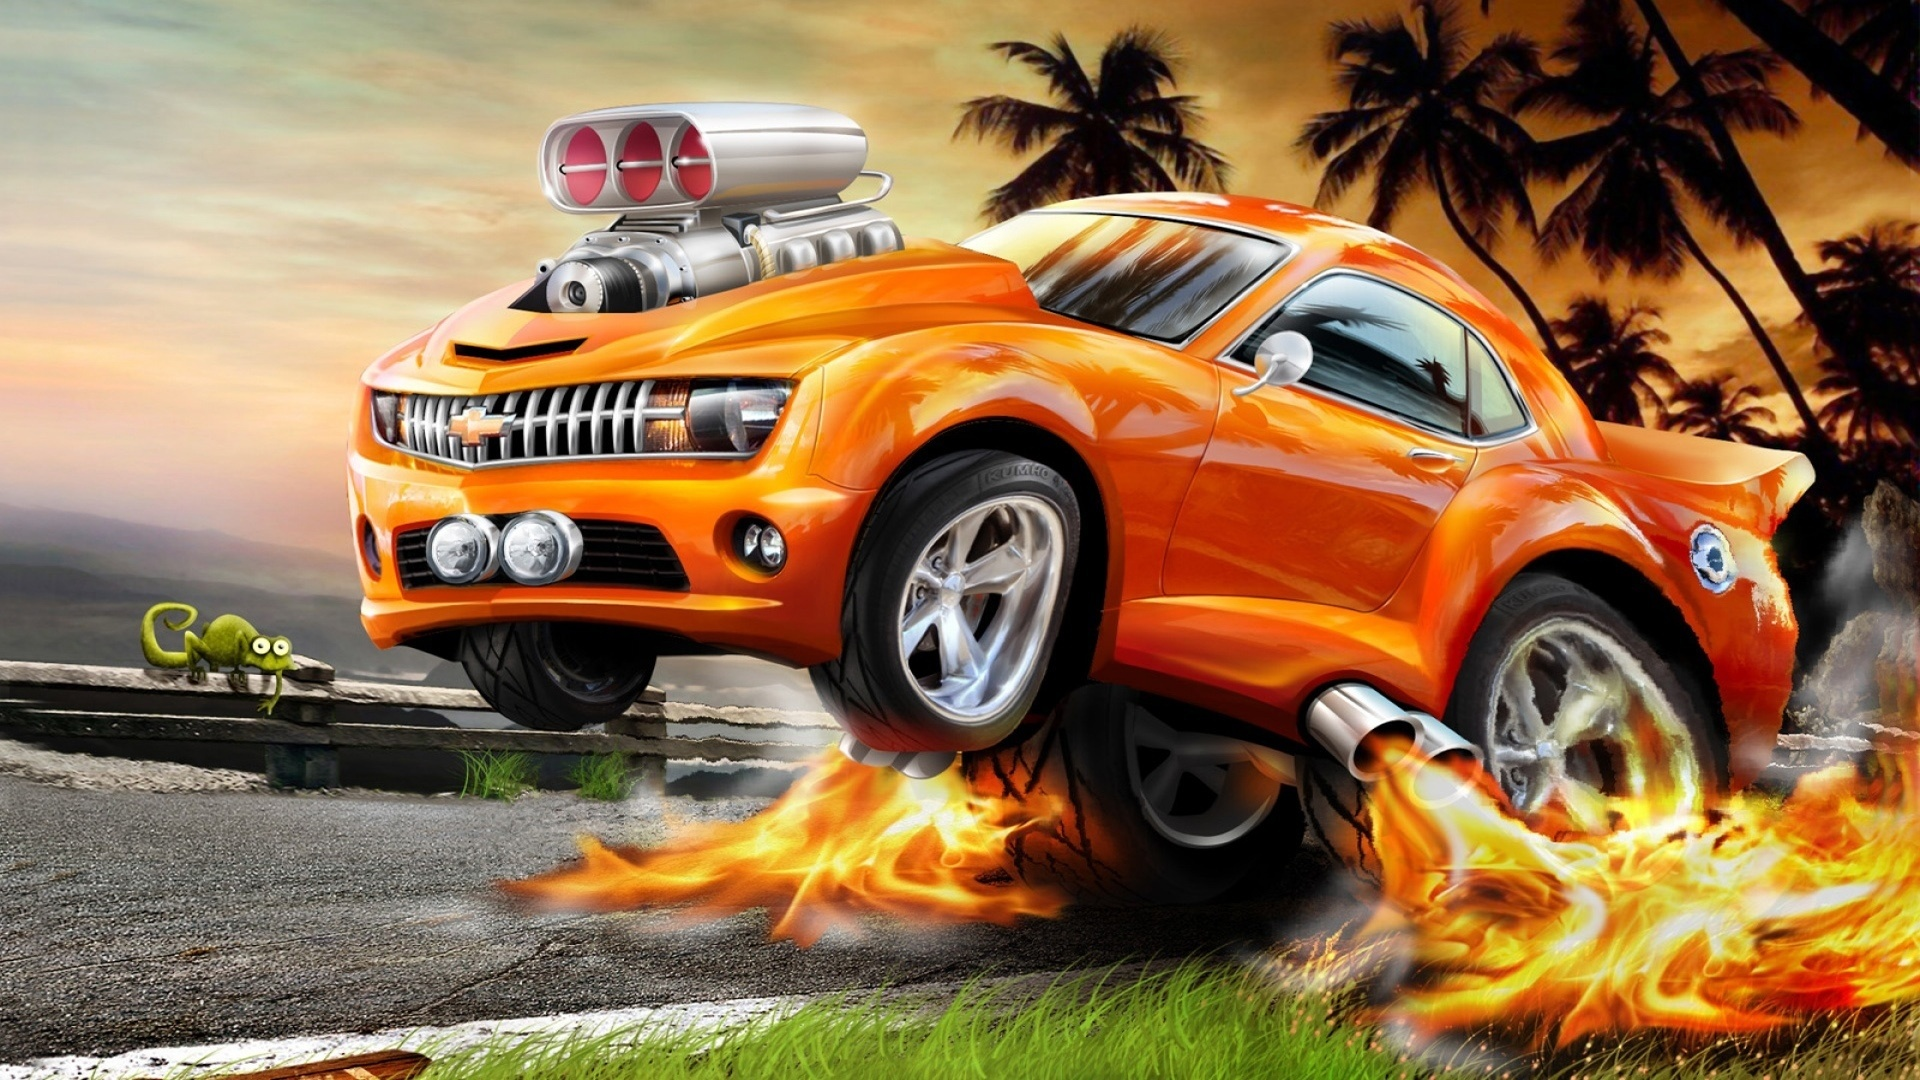 6 Hot Wheels HD Wallpapers Backgrounds Wallpaper Abyss